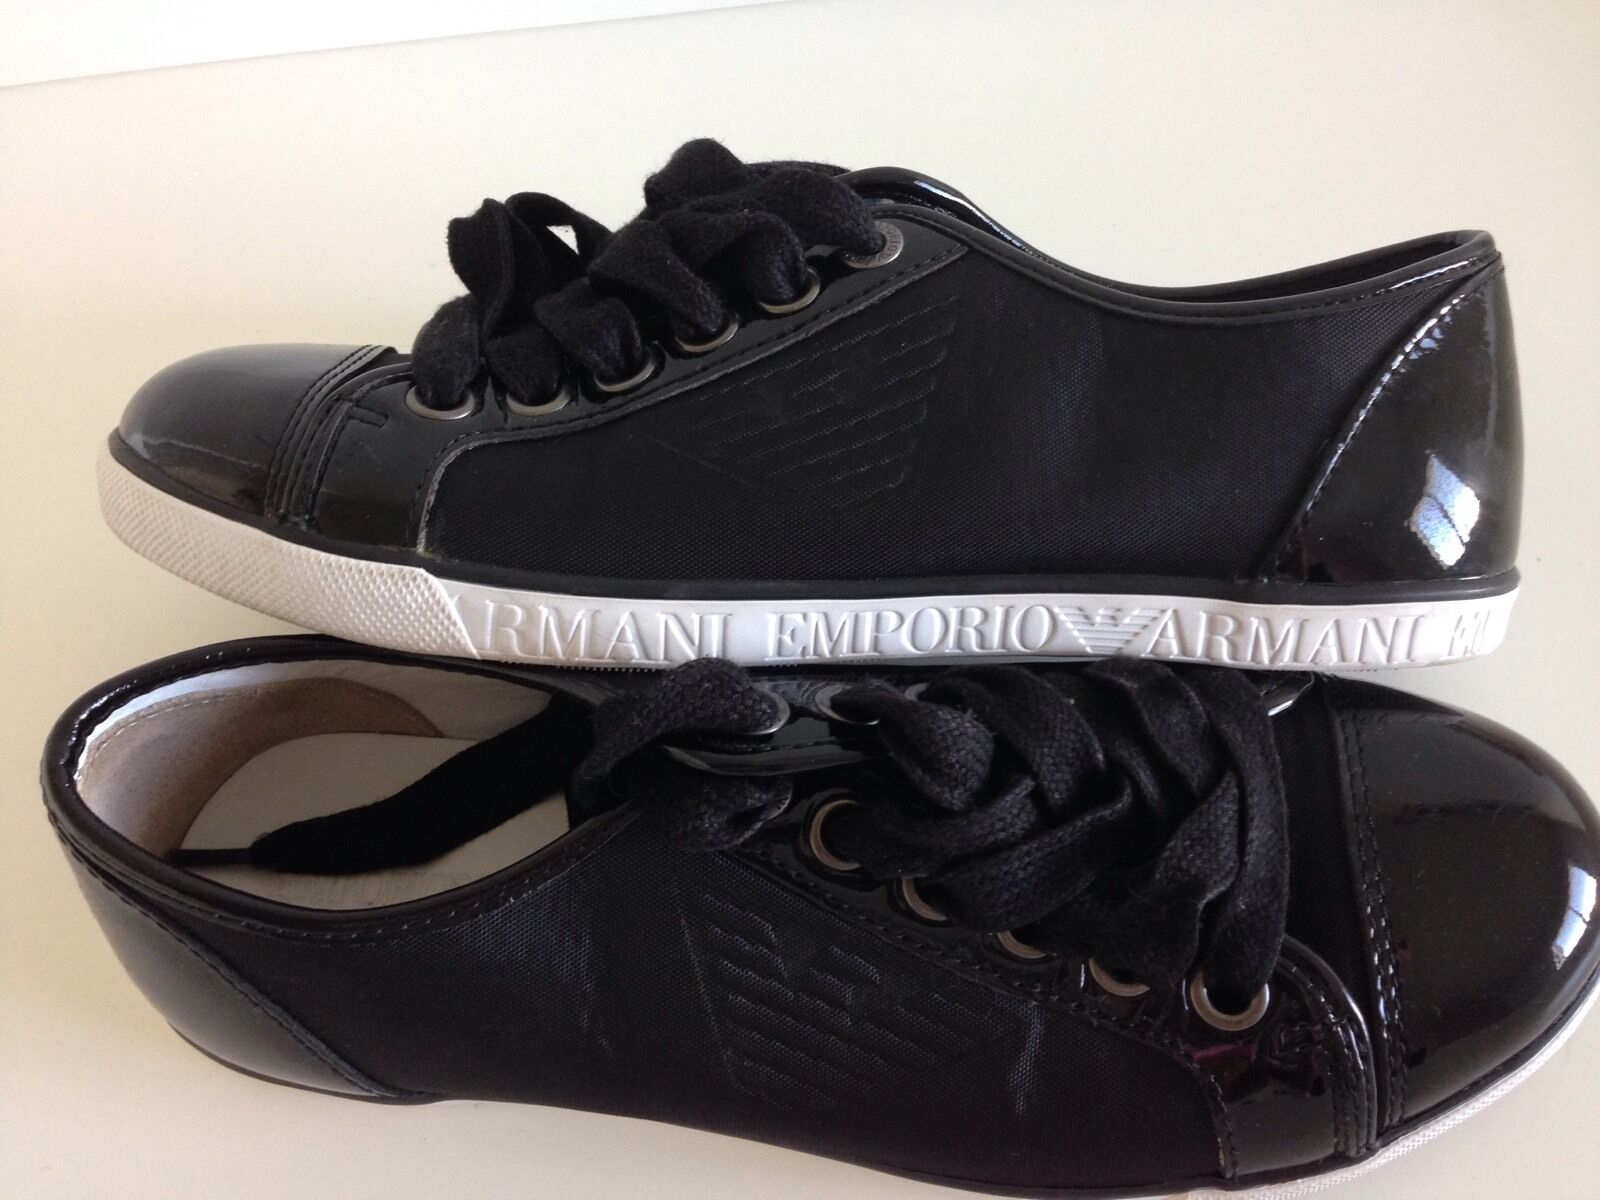 Man/Woman Emporio Armani Authentic Black Casual Sneakers Elegant shape Bright colors Complete specifications